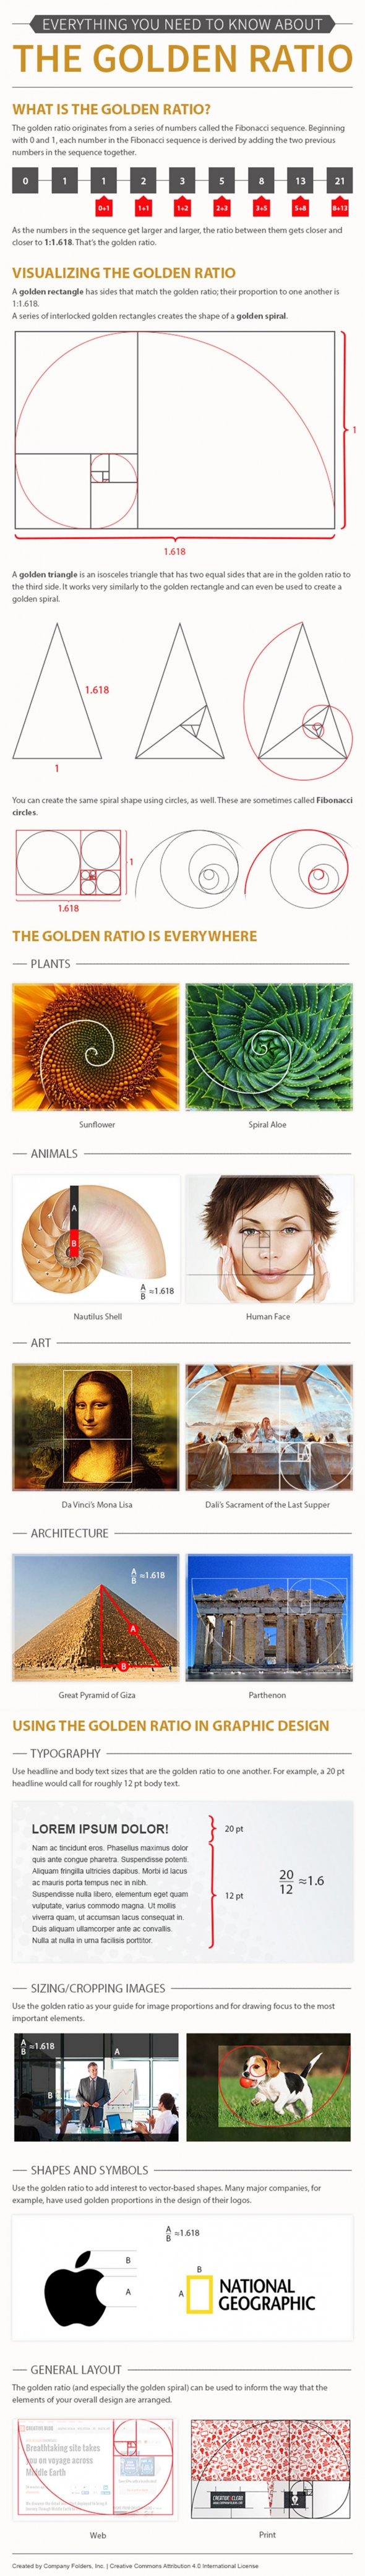 how to apply the golden ratio in graphic design infographic